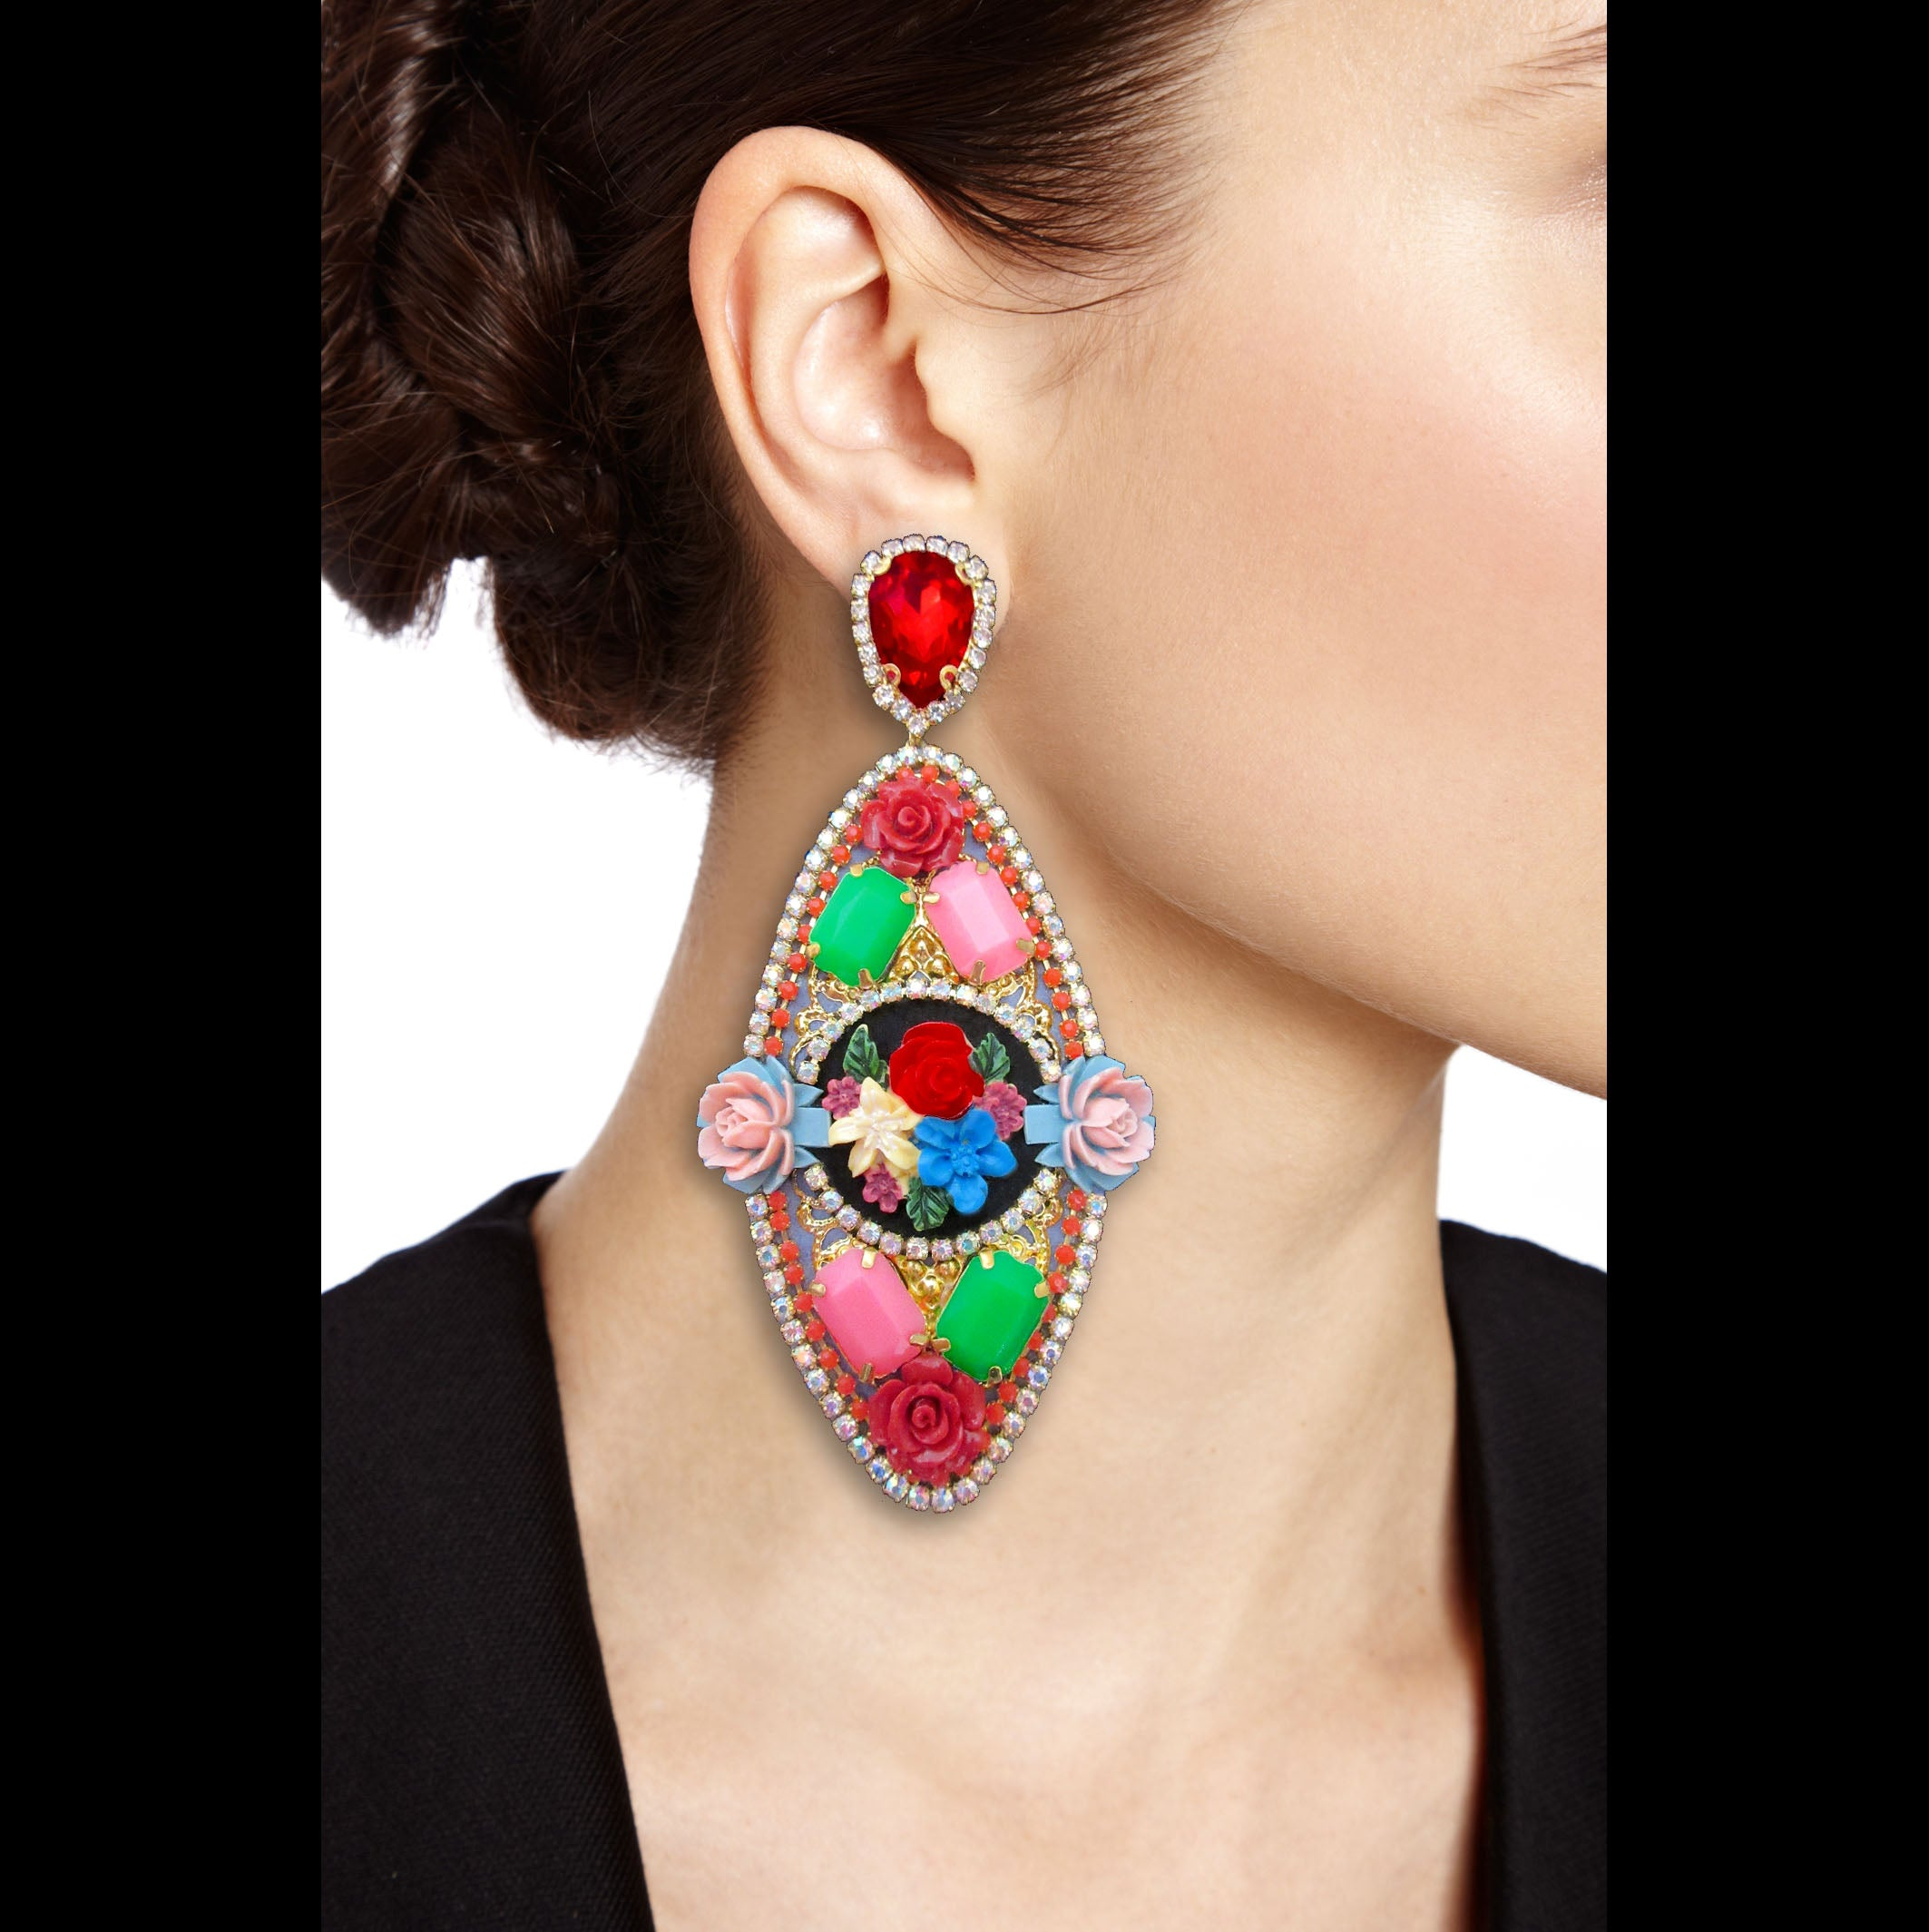 ine Jewelry haute couture earrings. Ultra chic and trendy couture jewel made in france.